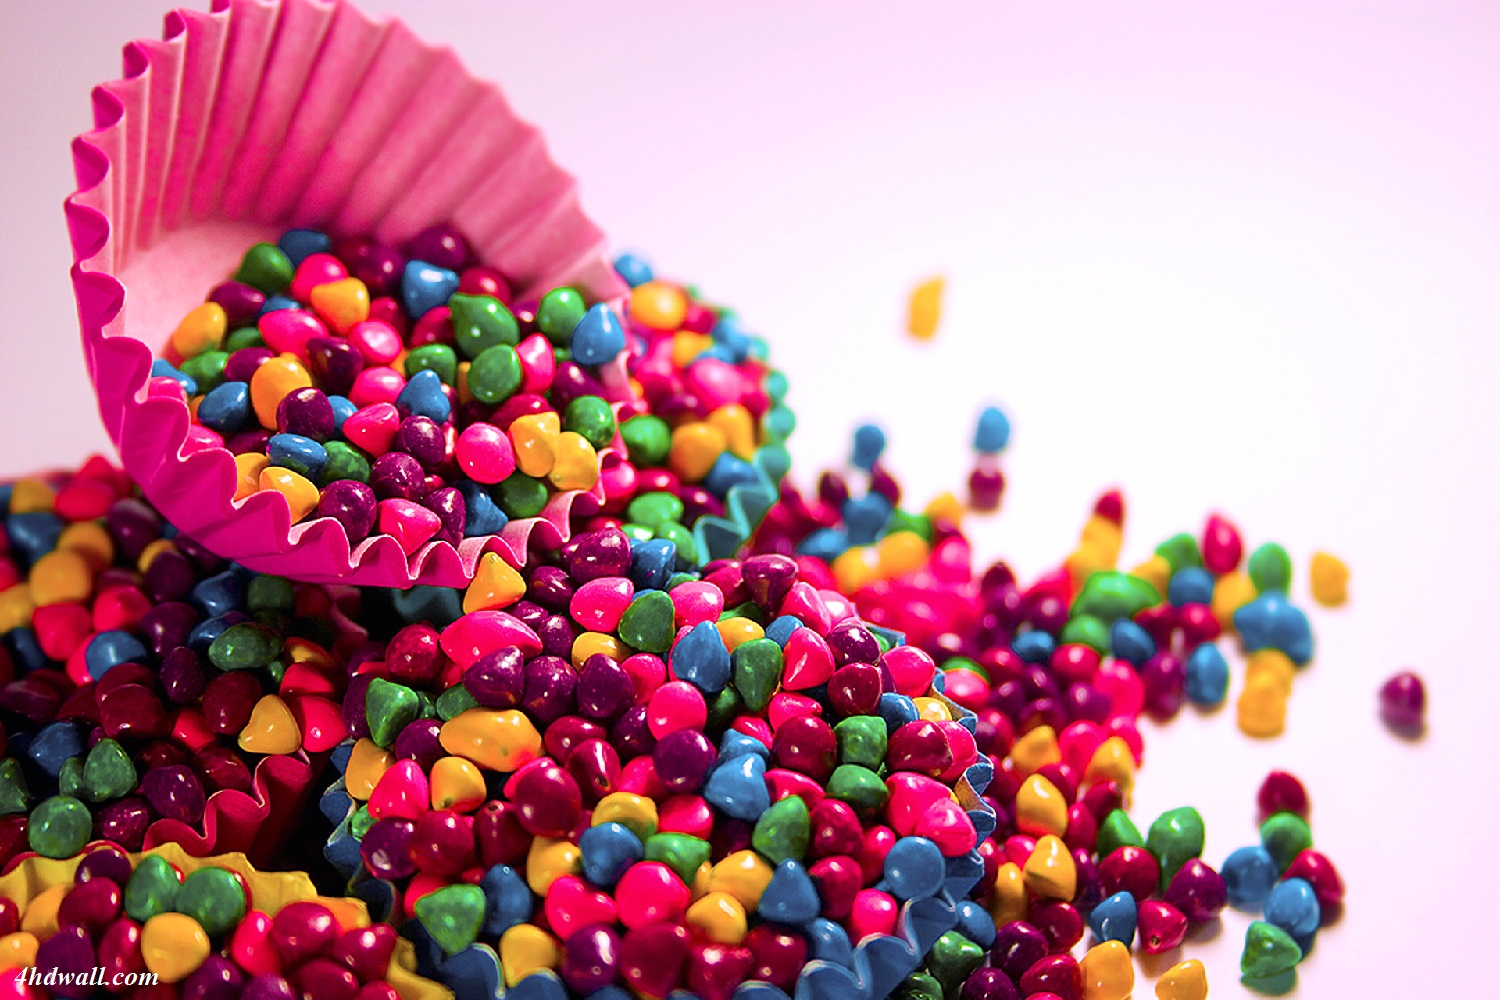 Cute Candy Wallpapers 11 Cool Hd Wallpaper   Hivewallpapercom 1500x1000